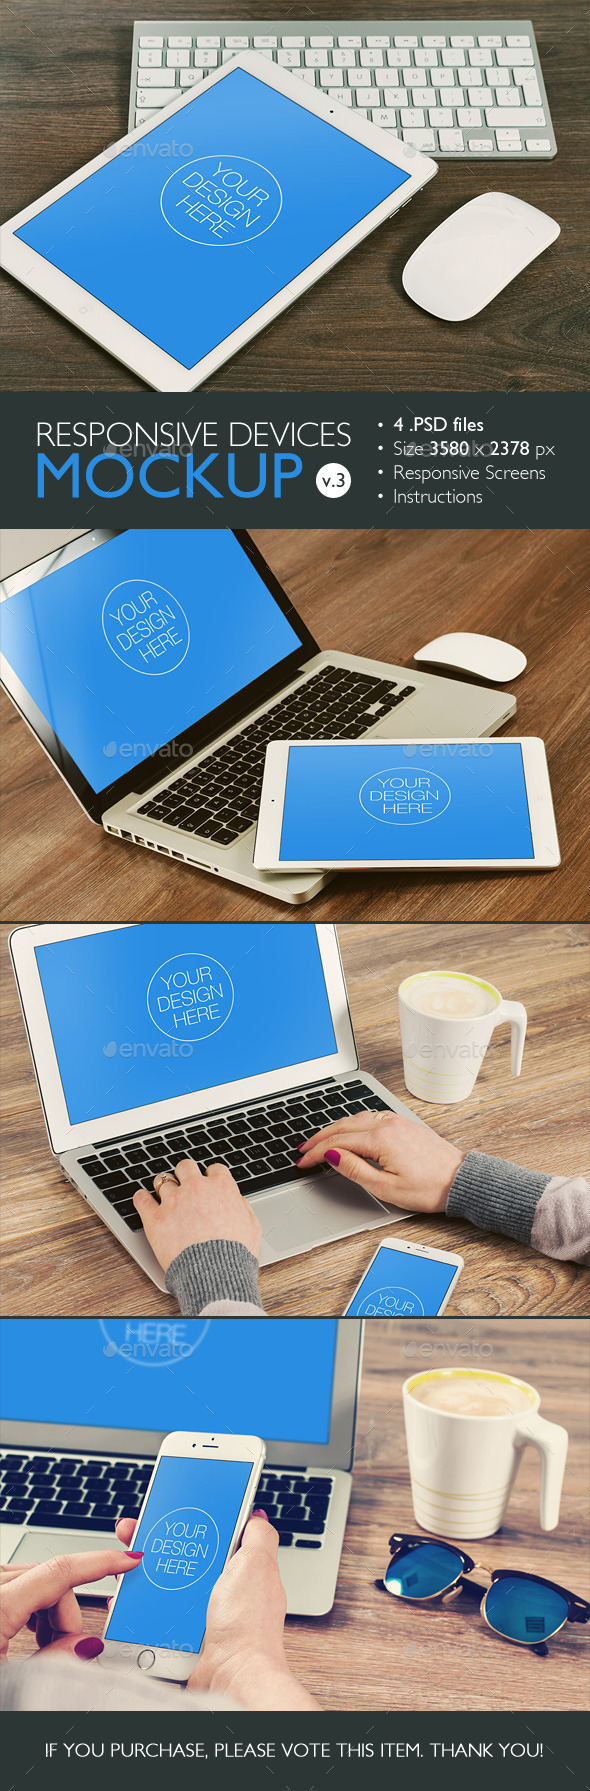 GraphicRiver Responsive Devices Mockup v.3 10462885